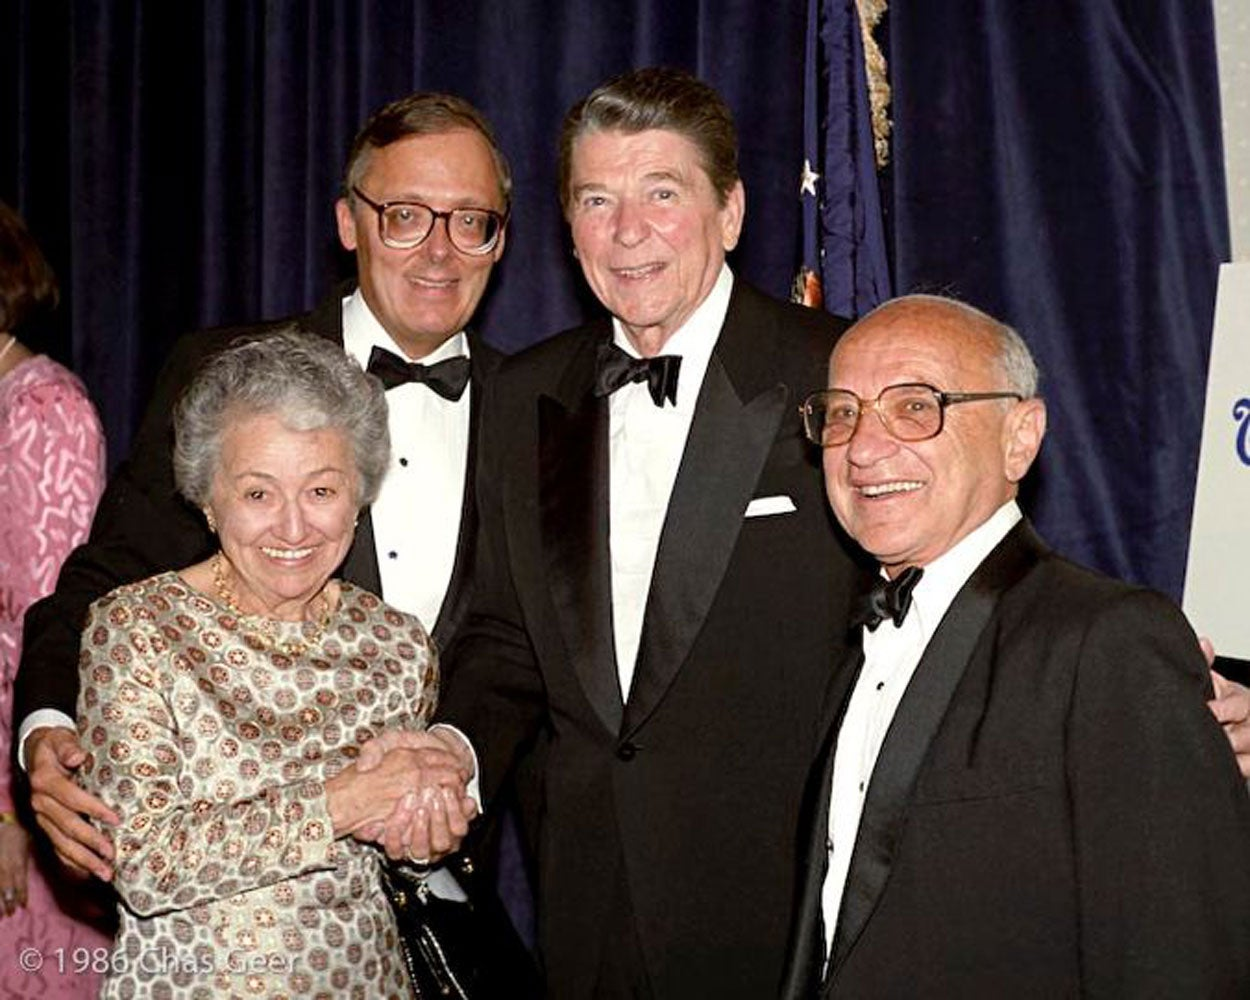 Ed Feulner and President Ronald Reagan are flanked by Rose and Milton Friedman in 1986. (Photo: Charles Geer for The Heritage Foundation)